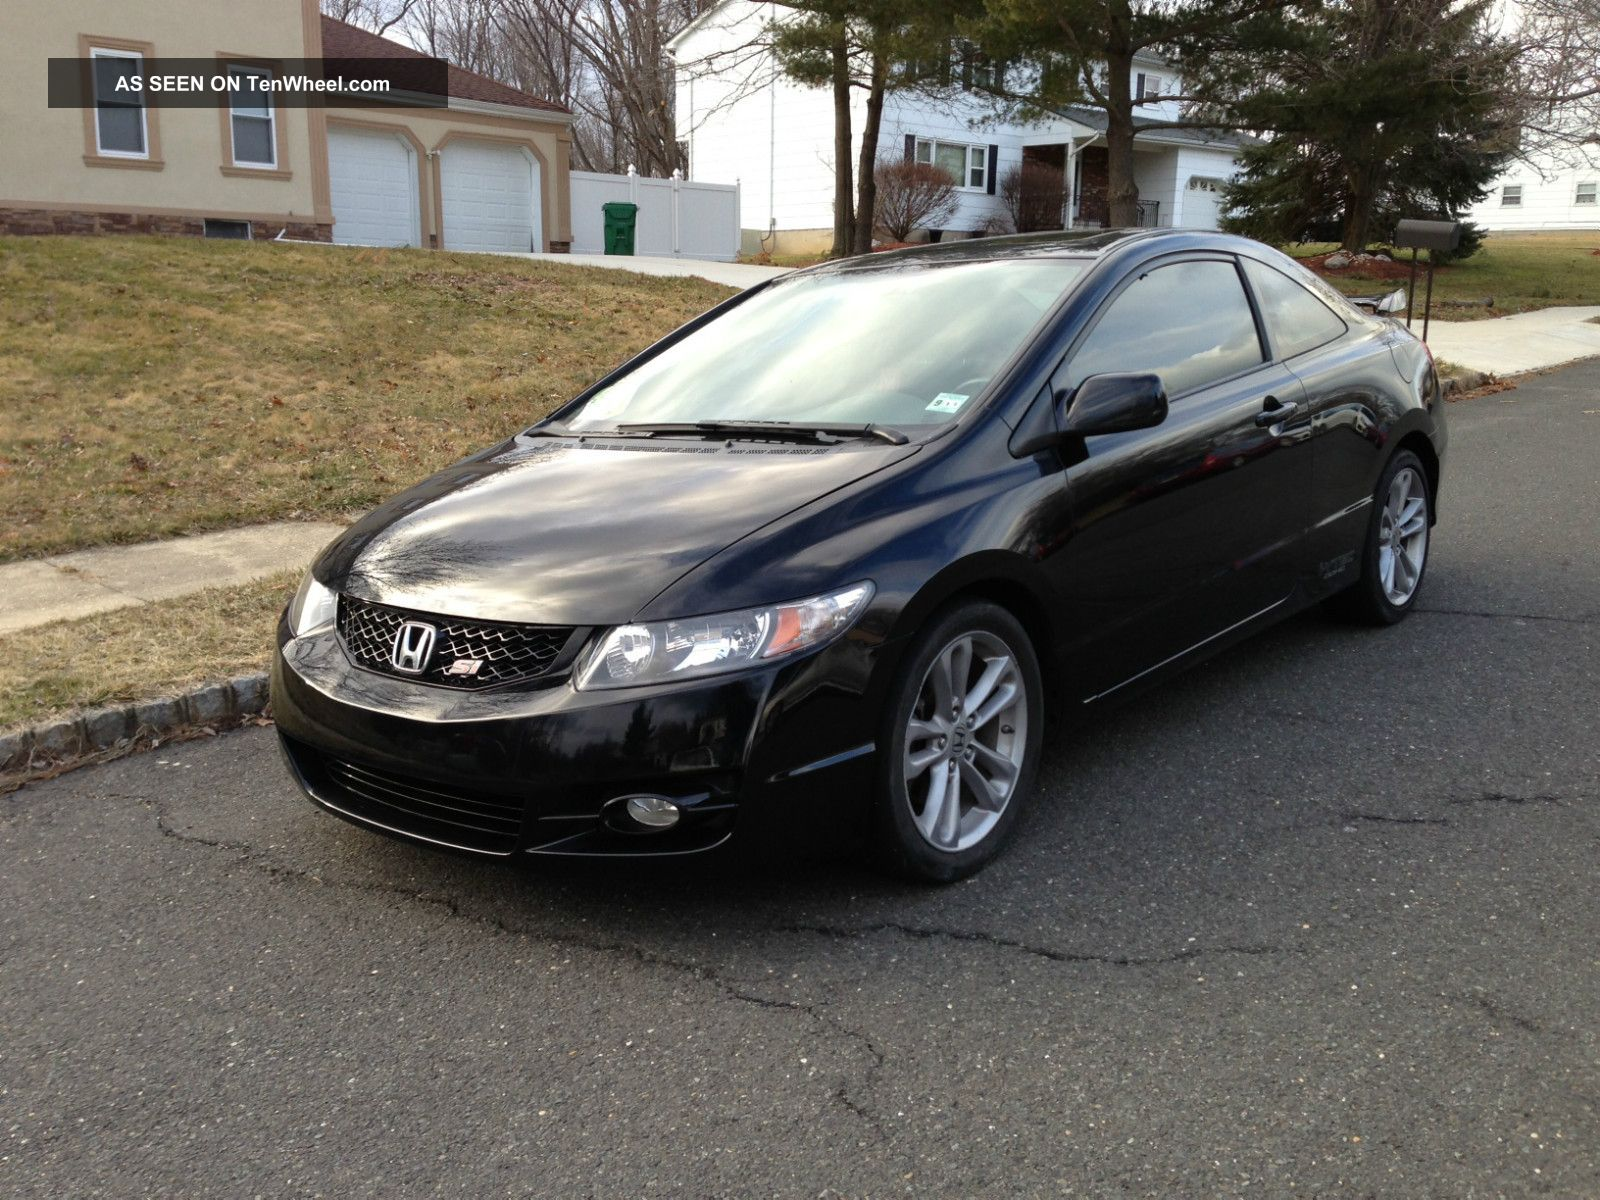 2008 honda civic si 2 door mods bc cams hondata flashpro